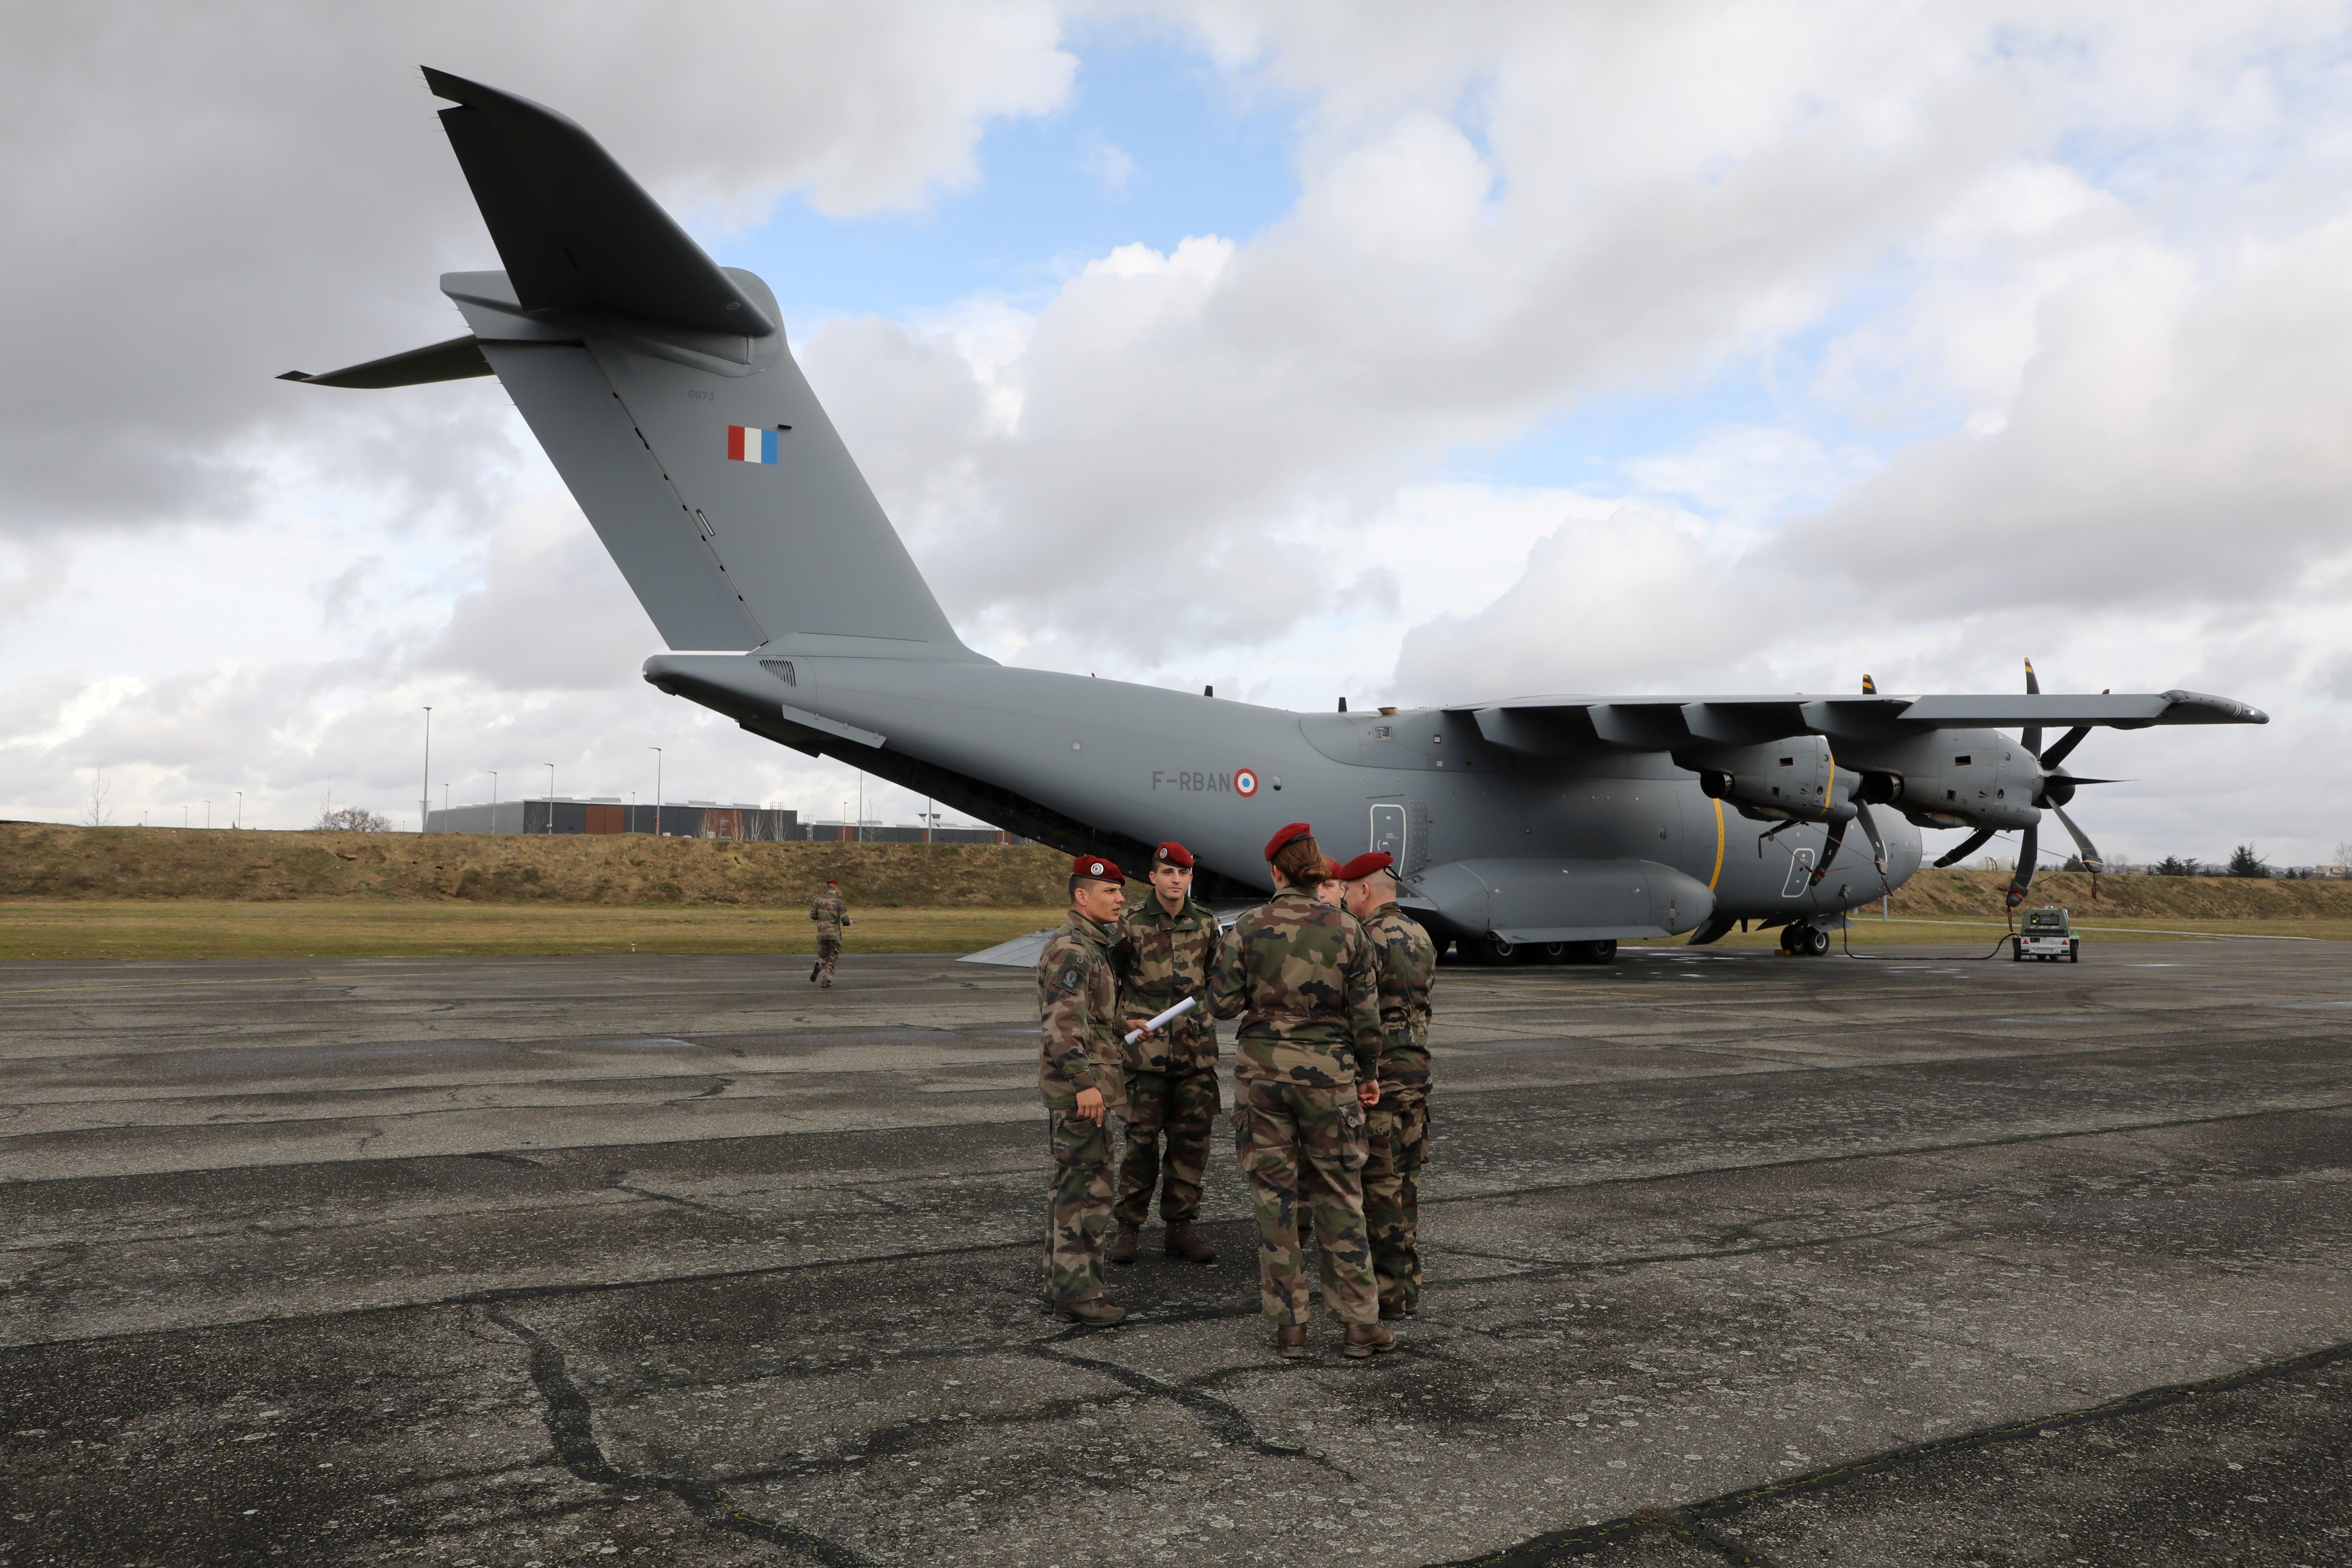 French soldiers stand next to an Airbus A400M on the tarmac at the air force base 101 Toulouse-Francazal, in Toulouse, southern France, on Jan. 17, 2019, before the French president's visit to deliver his 2019 New Year's wishes to the military forces. (Photo by Ludovic Marin/AFP/Getty Images)